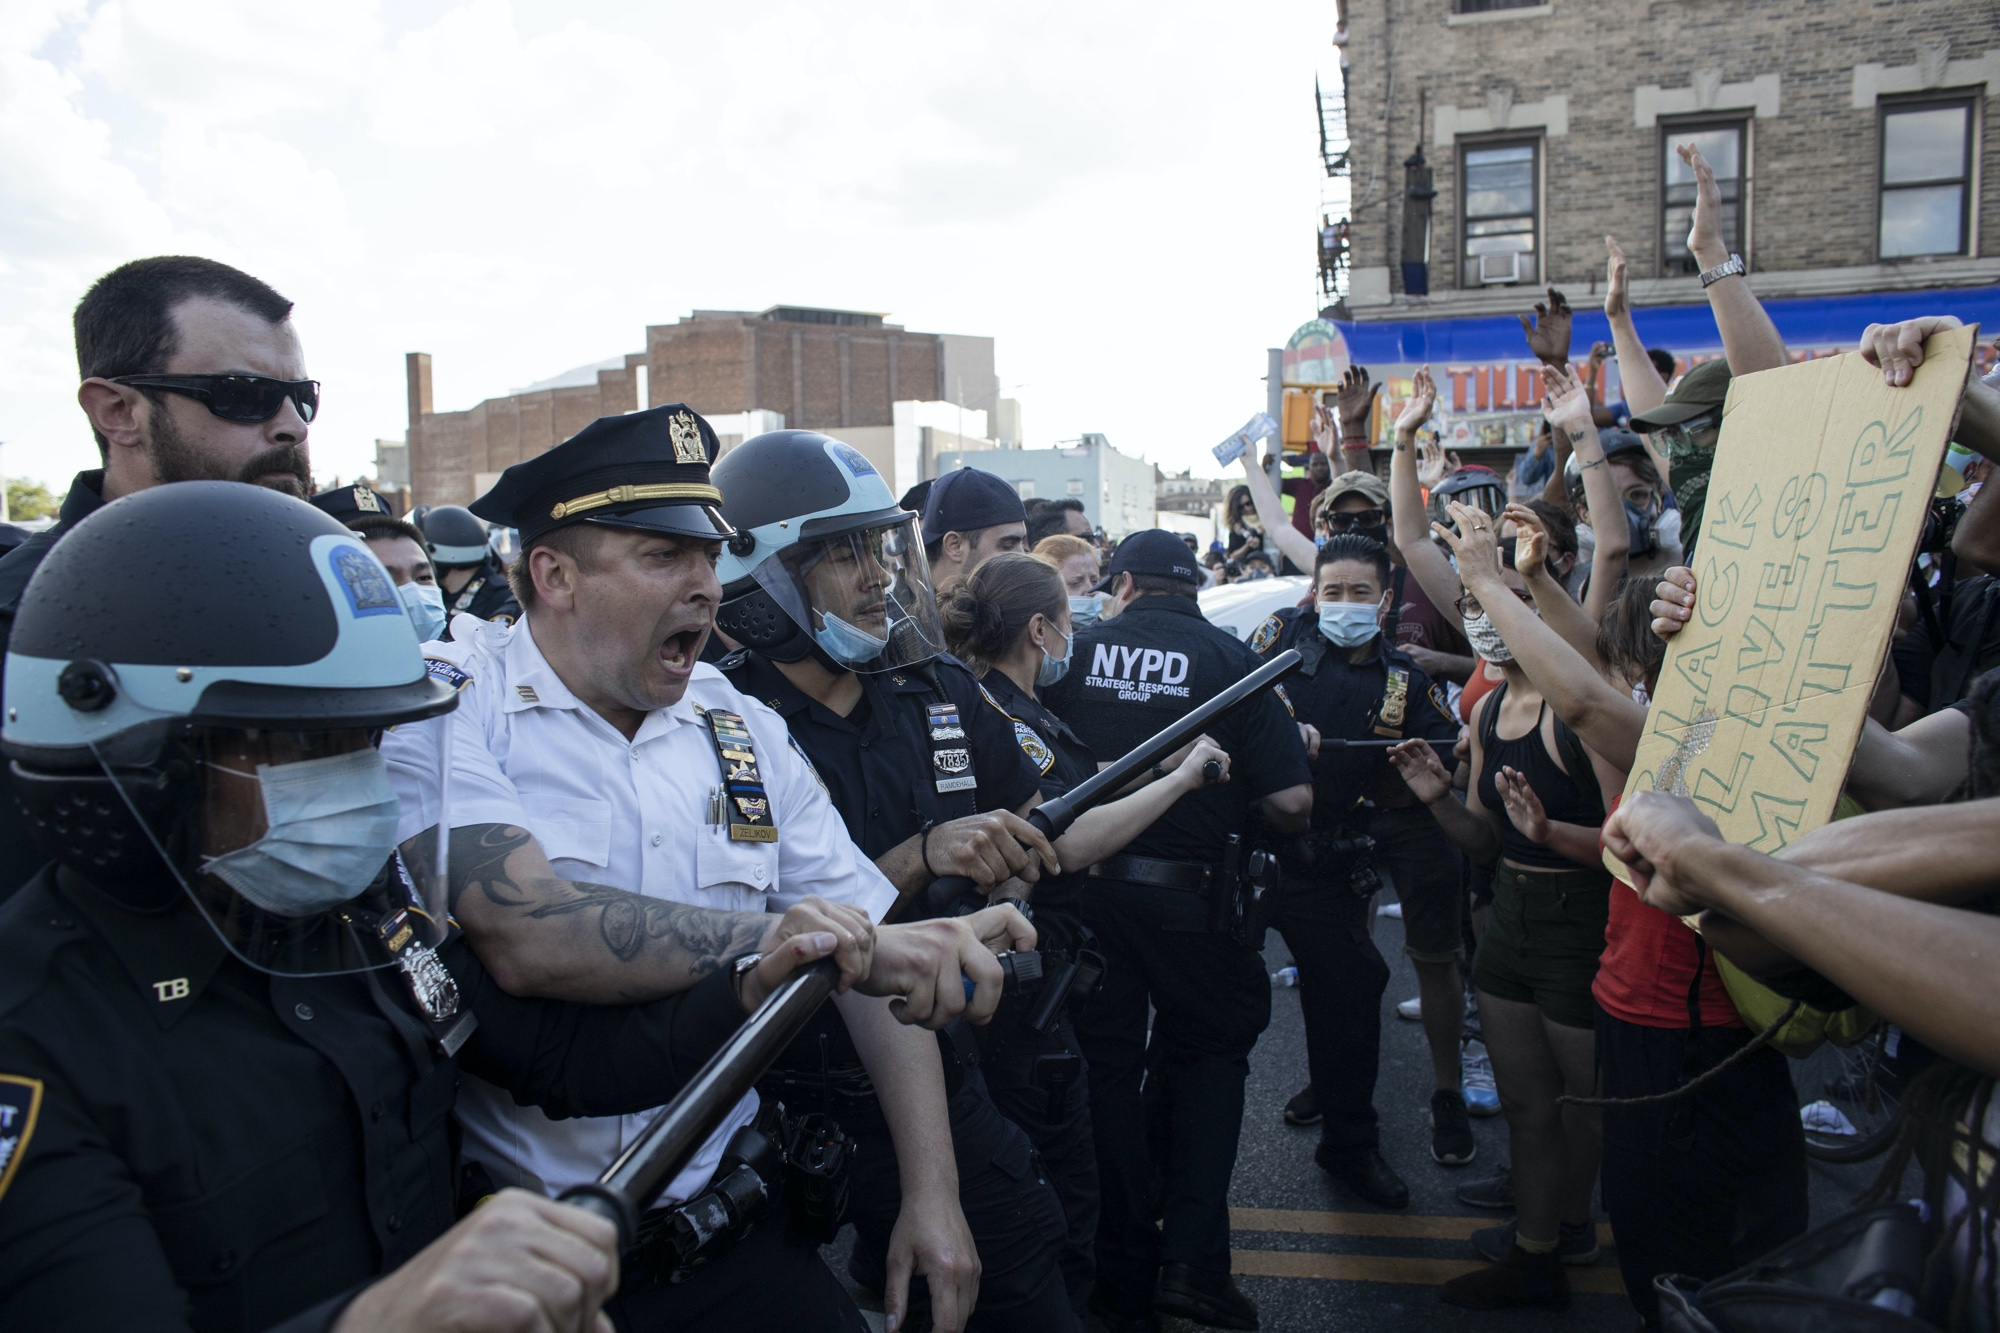 America's occupation by militarized police is in full view